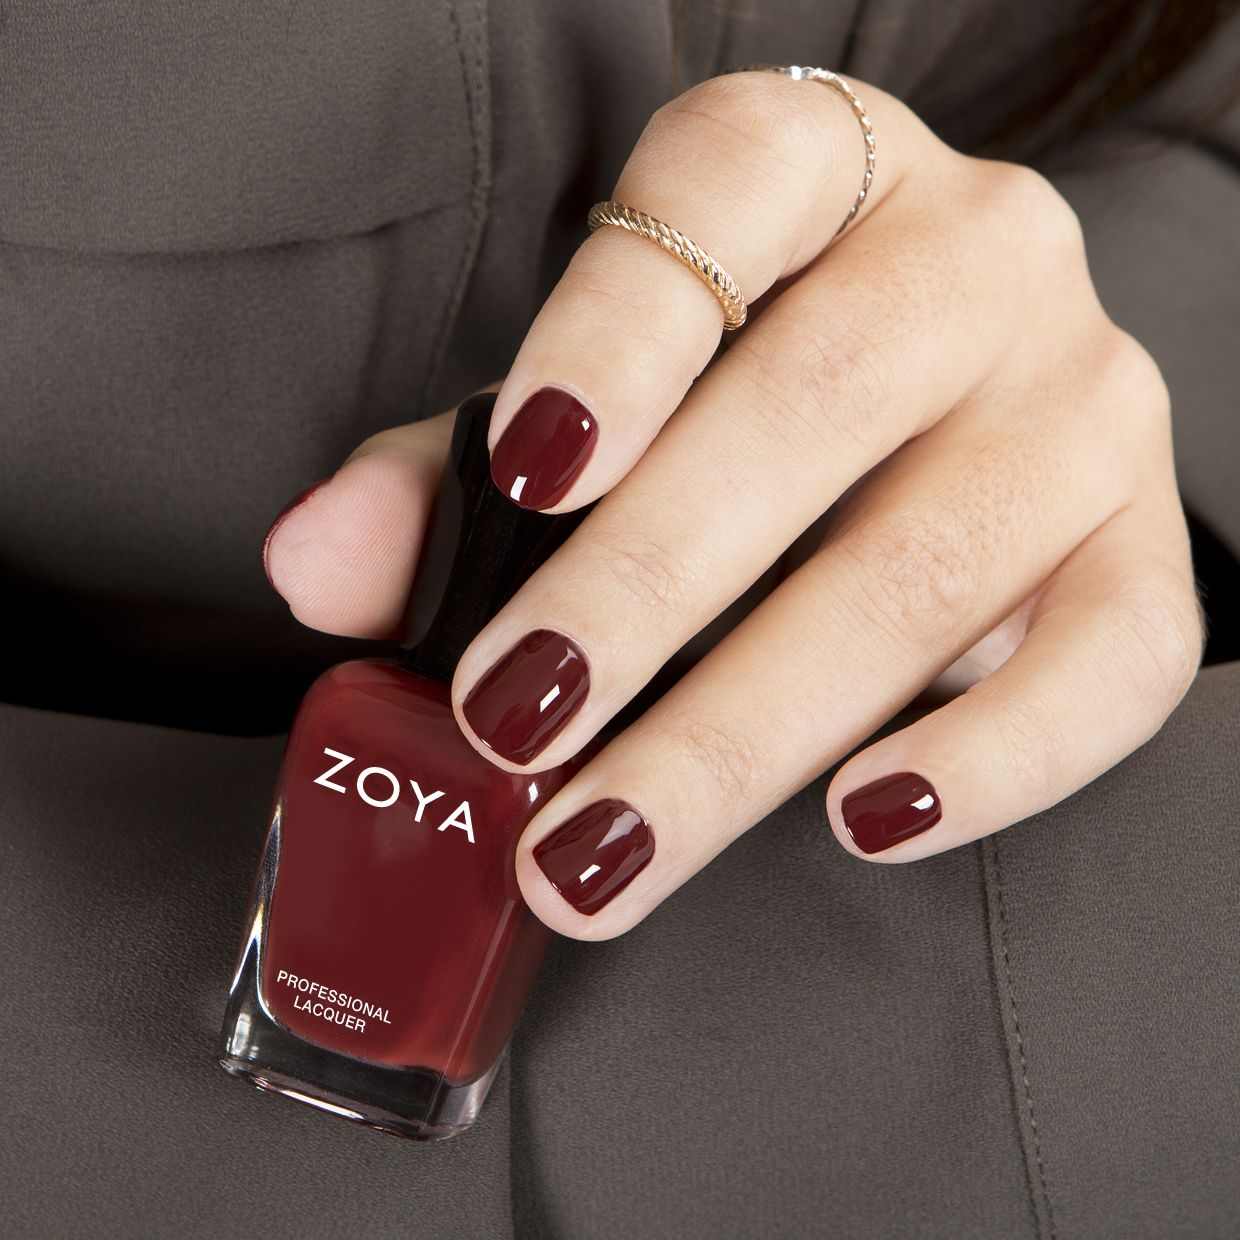 Zoya Pepper Marsala Nail Polish | Polished talons | Pinterest ...